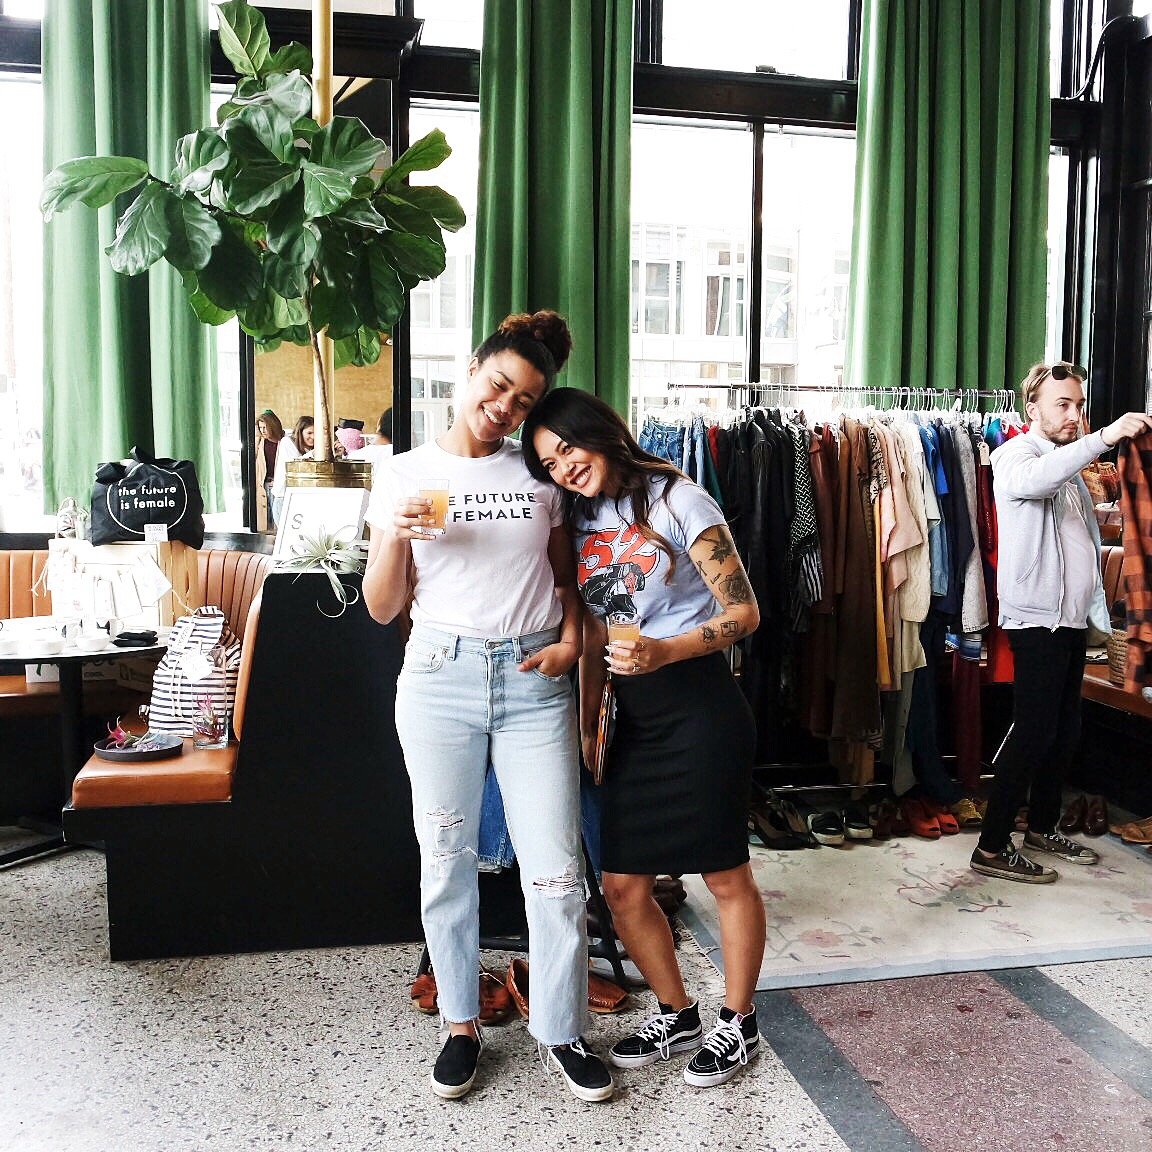 Diamond of  Satori  joined the market the last time around! We were so stoked to have her next to our booth! And the lovely  Anna Mischke  came in as back up for us because Nick wasn't able to make the last market. We love you Anna :) (the dude on the right was just diggin that flannel)